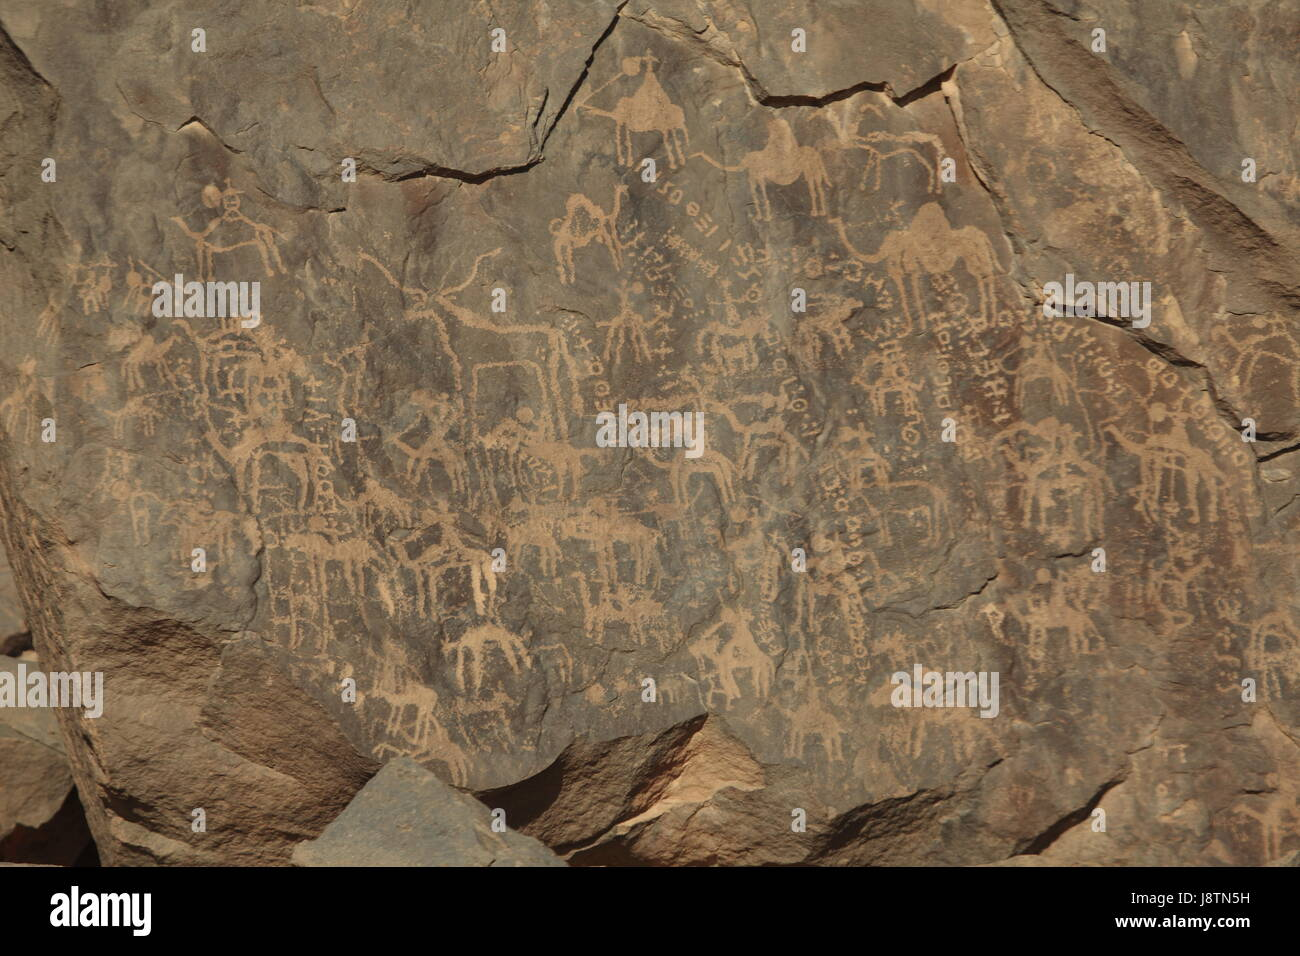 Stone age rock carvings stock photo  alamy